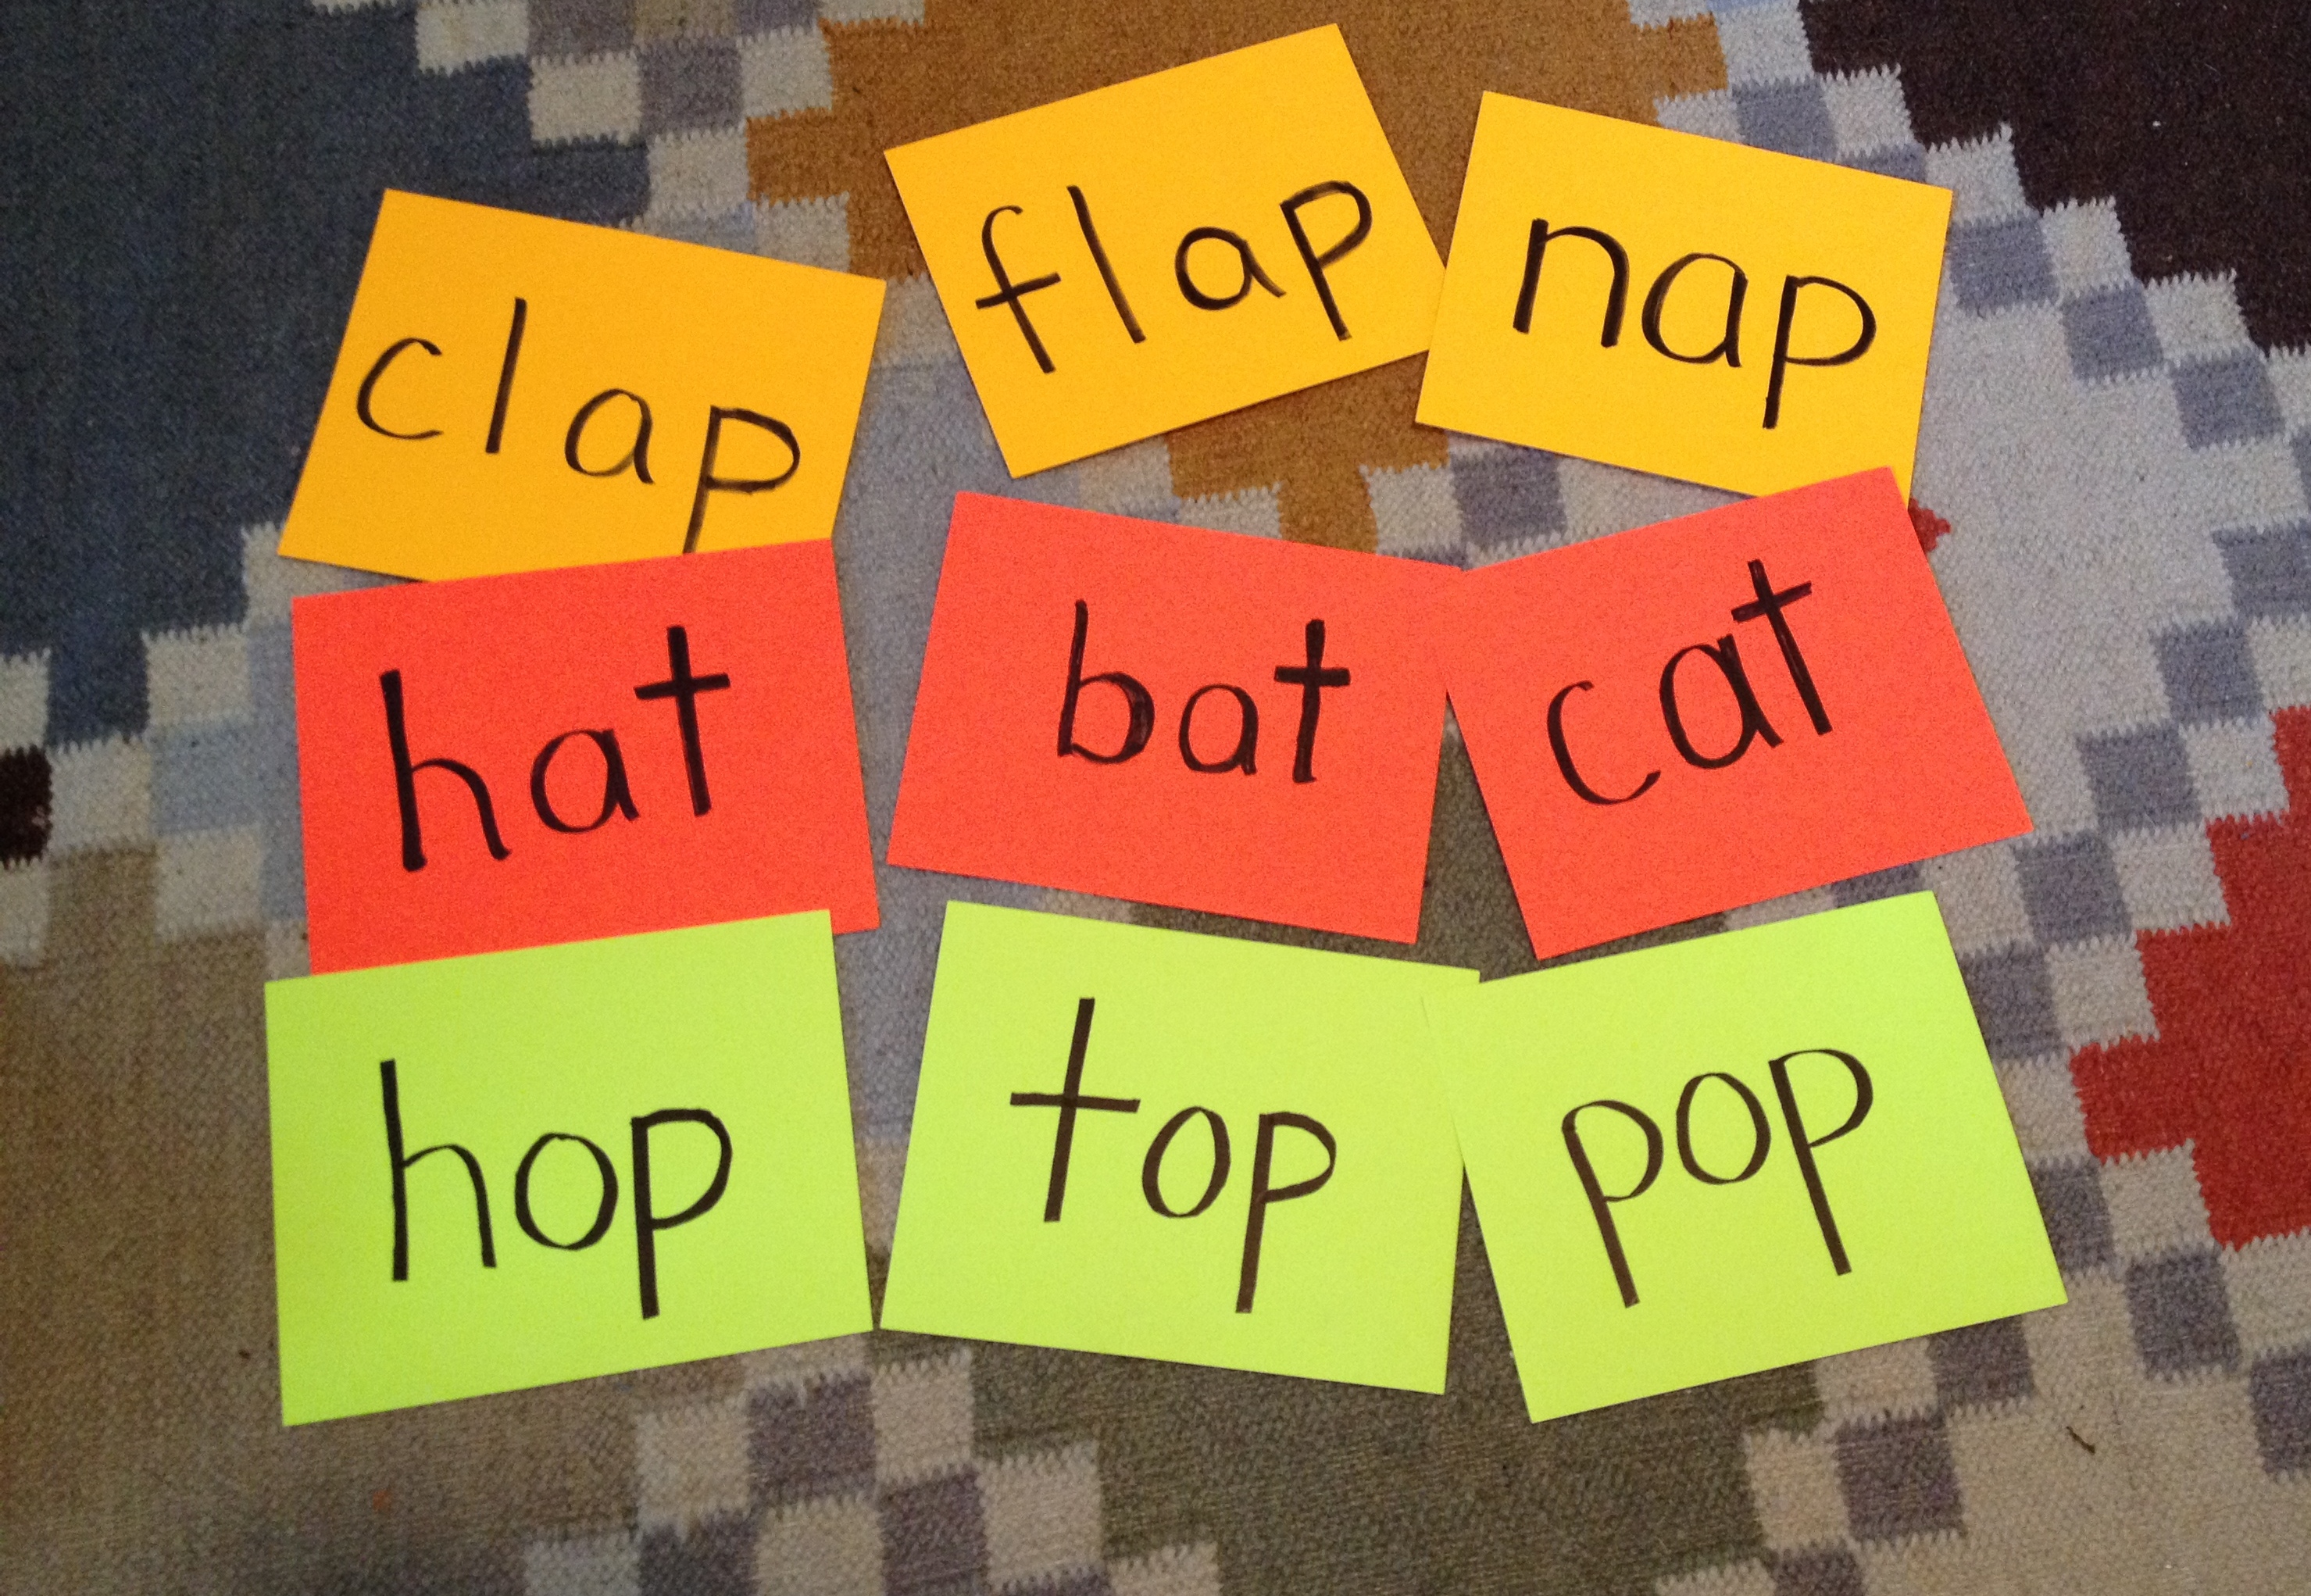 Cat Bat Sat Hat Say A Rhyming Word With That